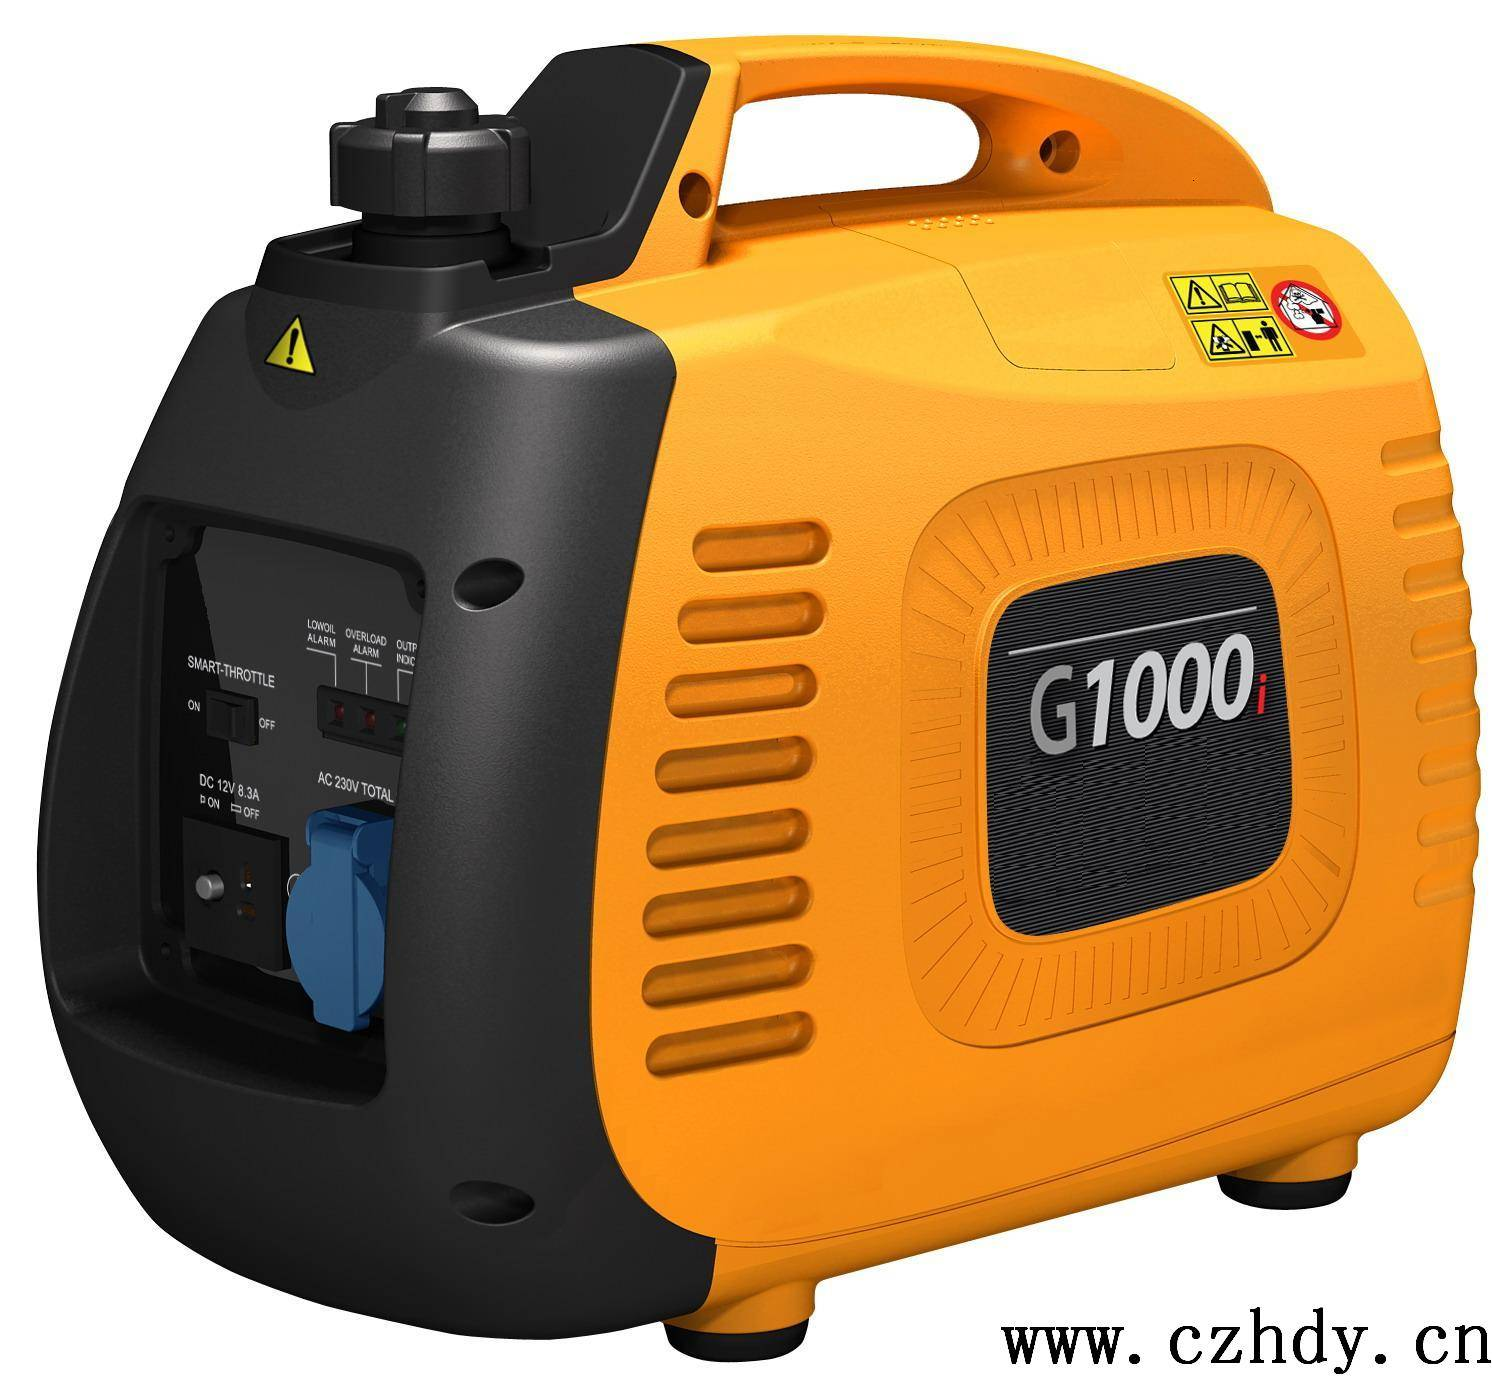 Silent Portable Digital Inverter Generator